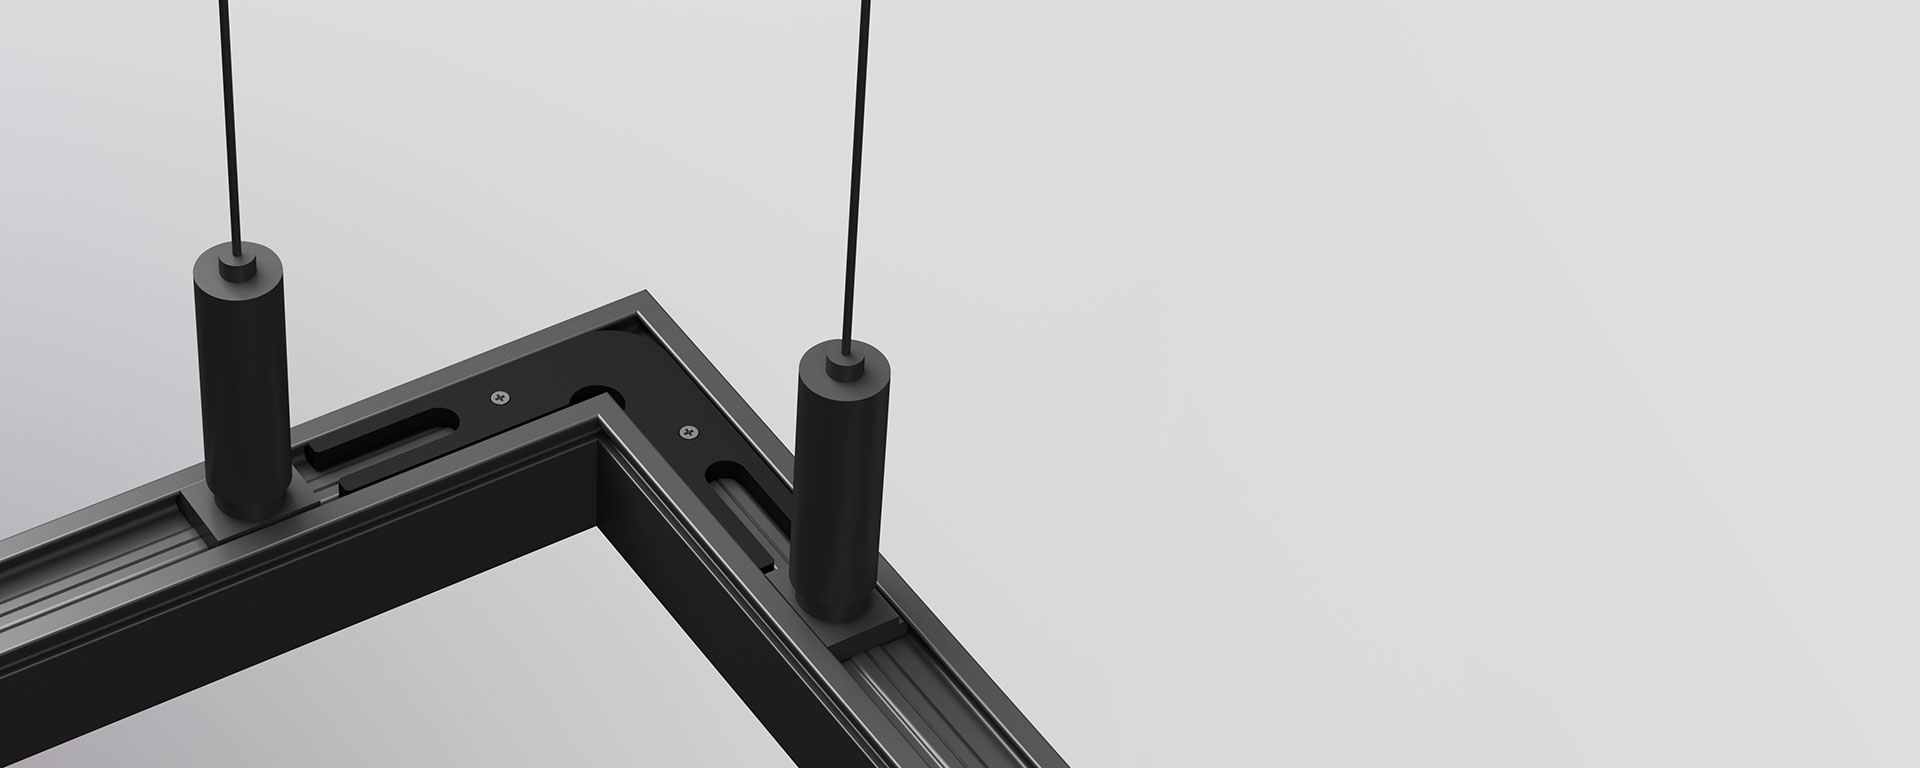 Specially designed corner locks allow for continuous illumination around 90-degree corners. Seamless corner options are available for both suspended and surface mounted fittings, enabling more flexibility to the sleek and minimal design of Forma.